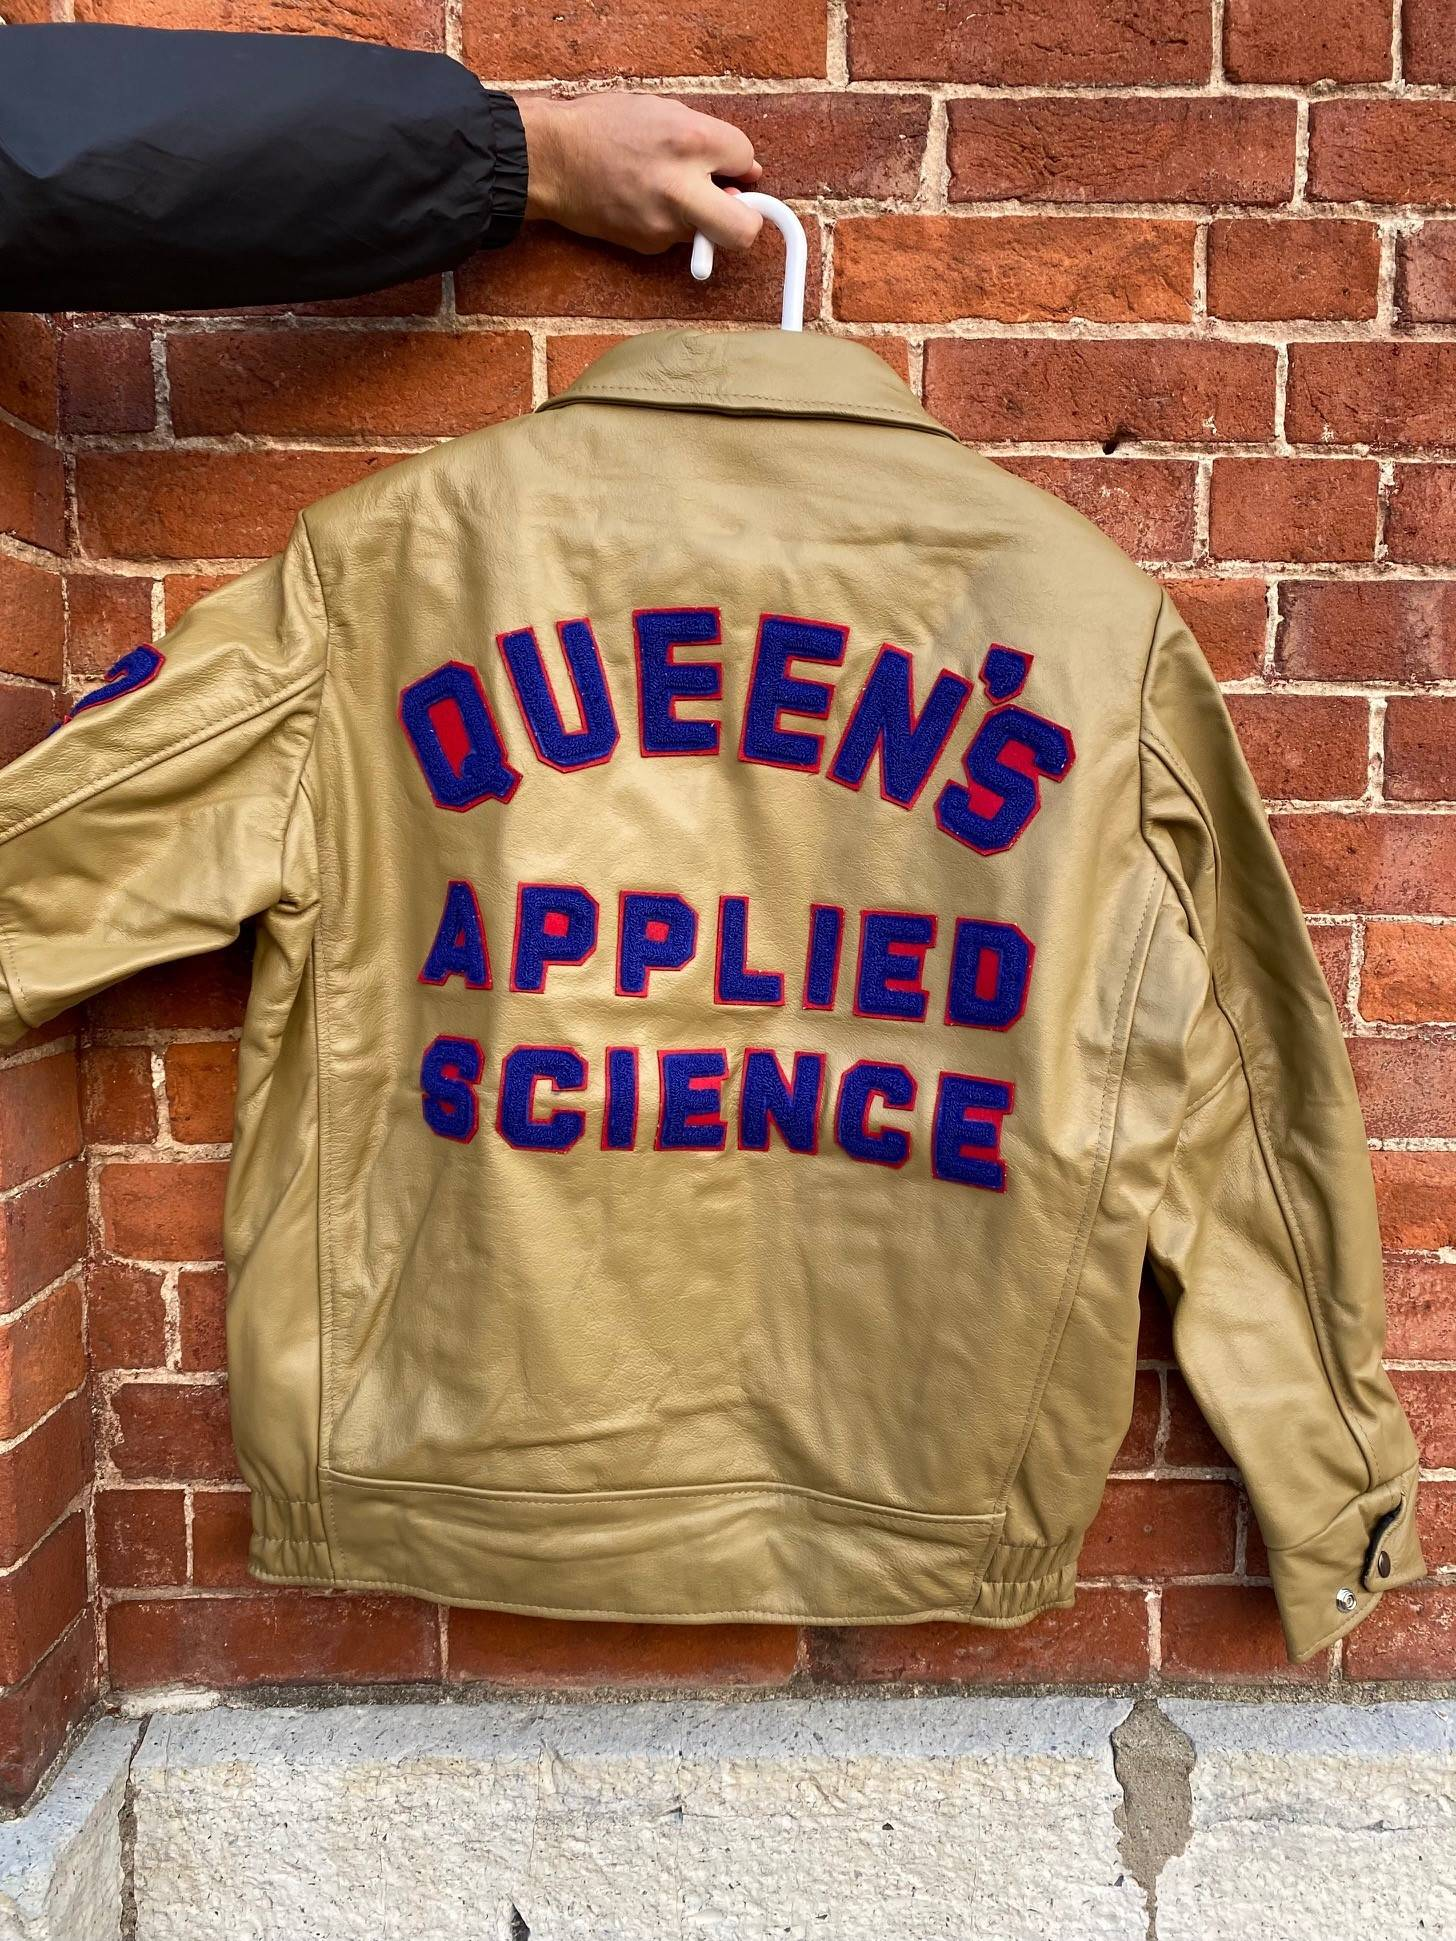 Pictured is a Unisex Sci' 22 Jacket, Size 42